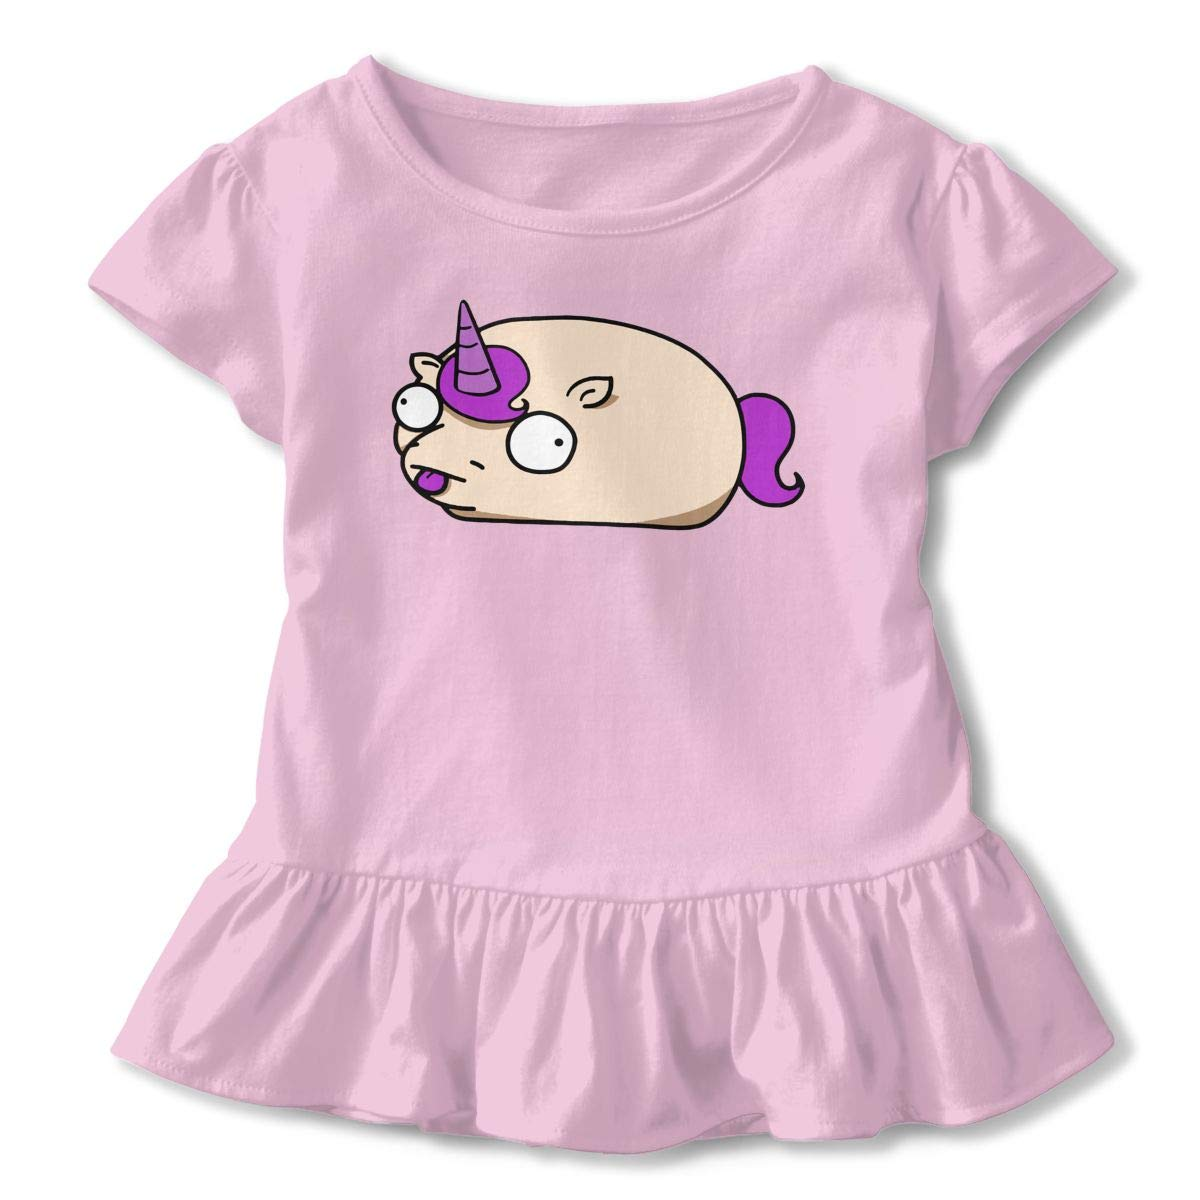 HYBDX9T Little Girls Weird Unitato Funny Short Sleeve Cotton T Shirts Basic Tops Tee Clothes